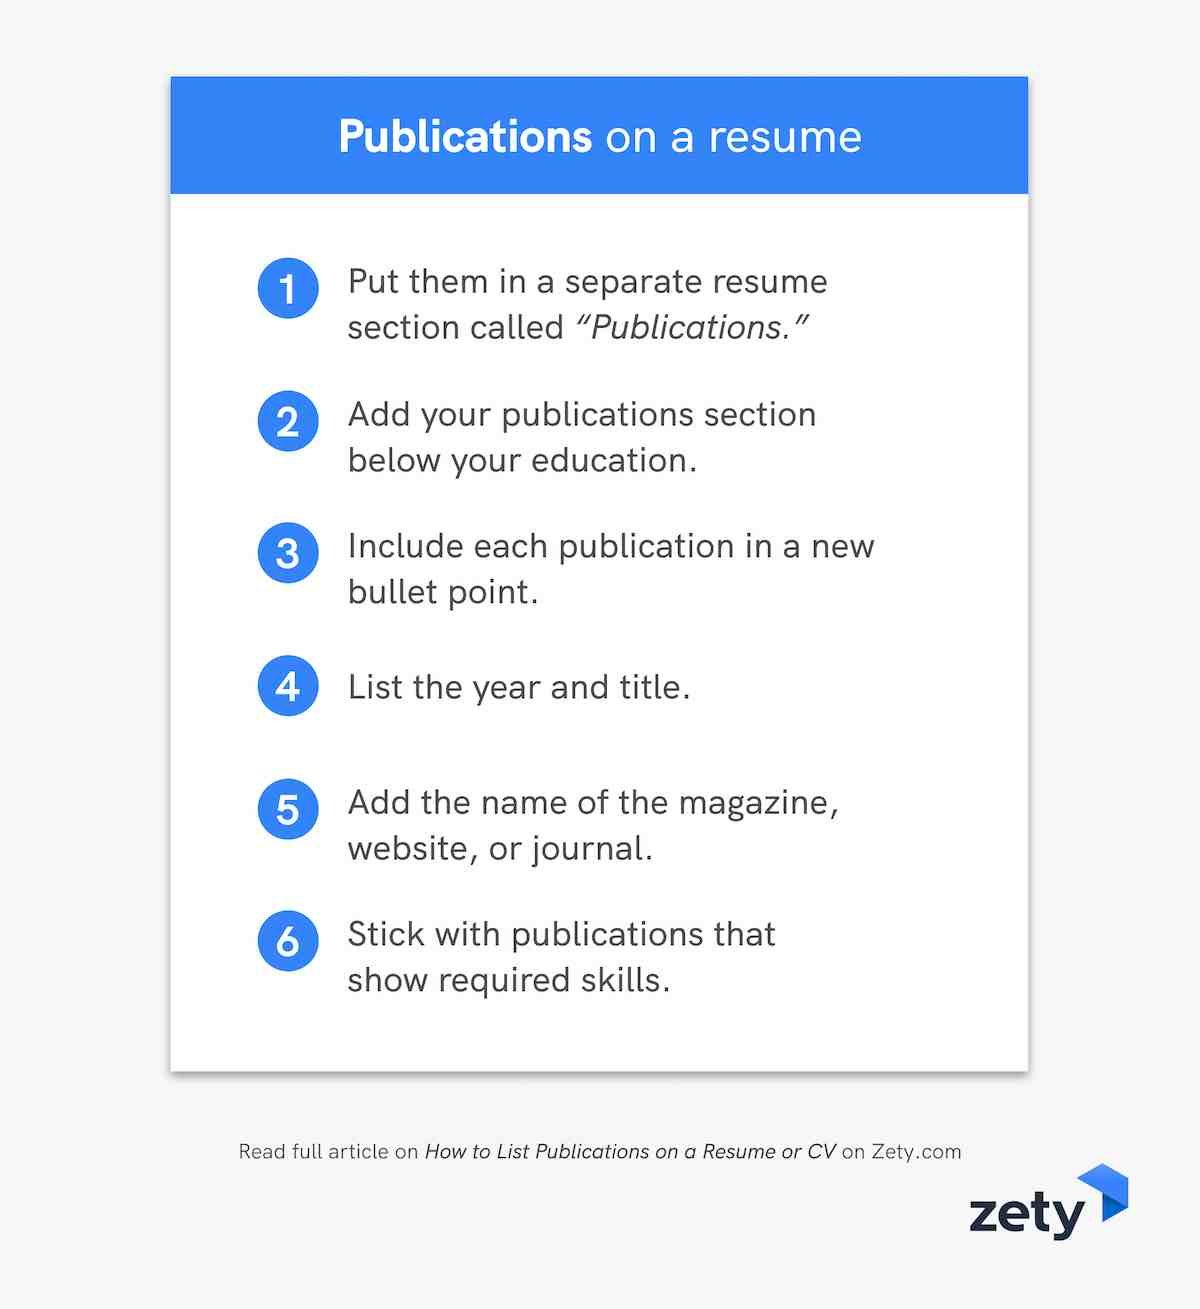 Everything you need to know about publications on a resume